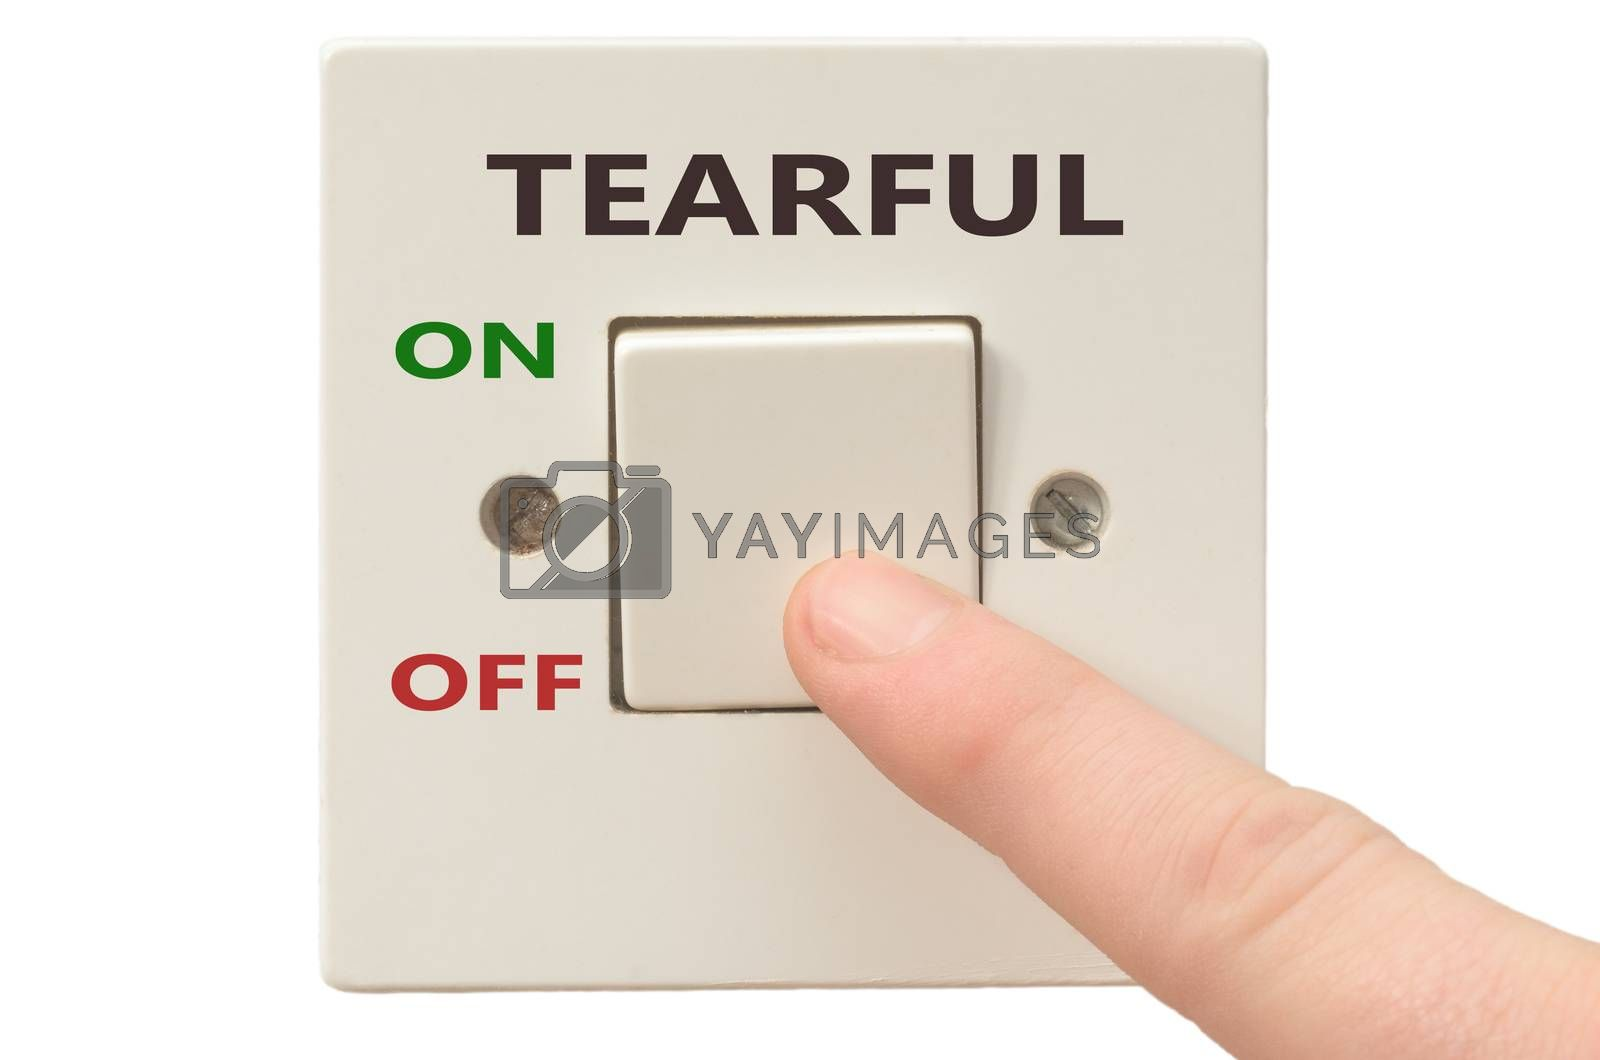 Turning off Tearful with finger on electrical switch